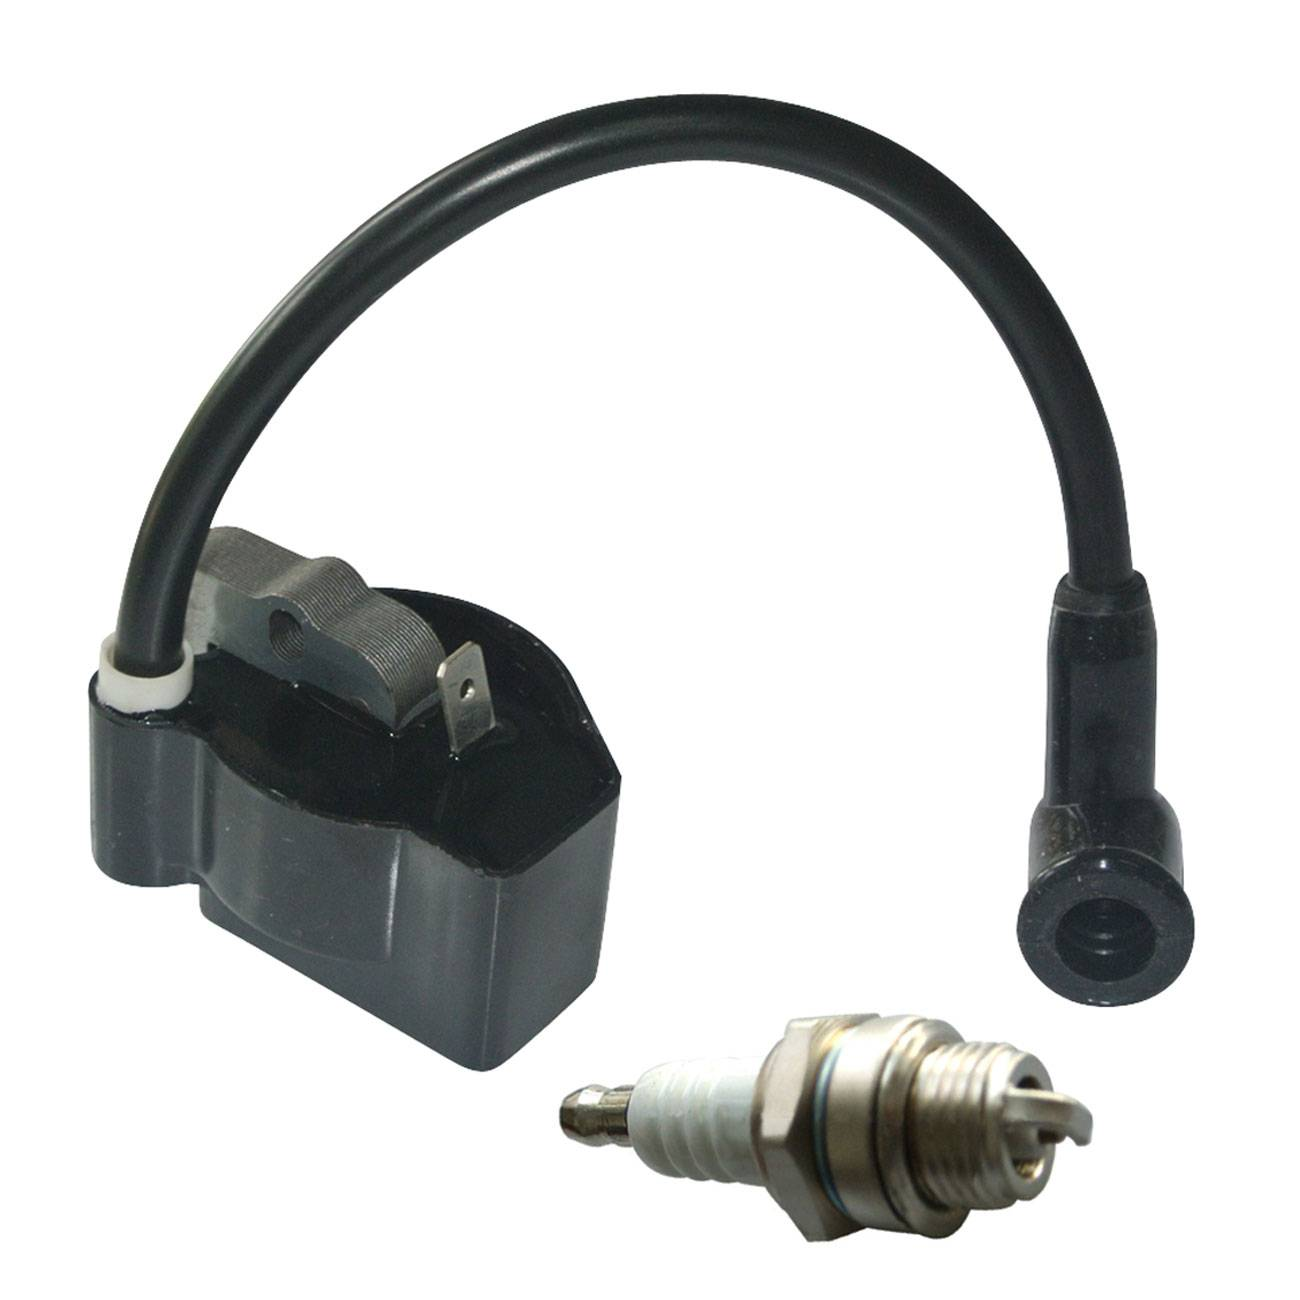 Spark Plug  Ignition Coil For STIHL FS38 FS45 FS46 FS55 KM55 Brushcutter Trimmer